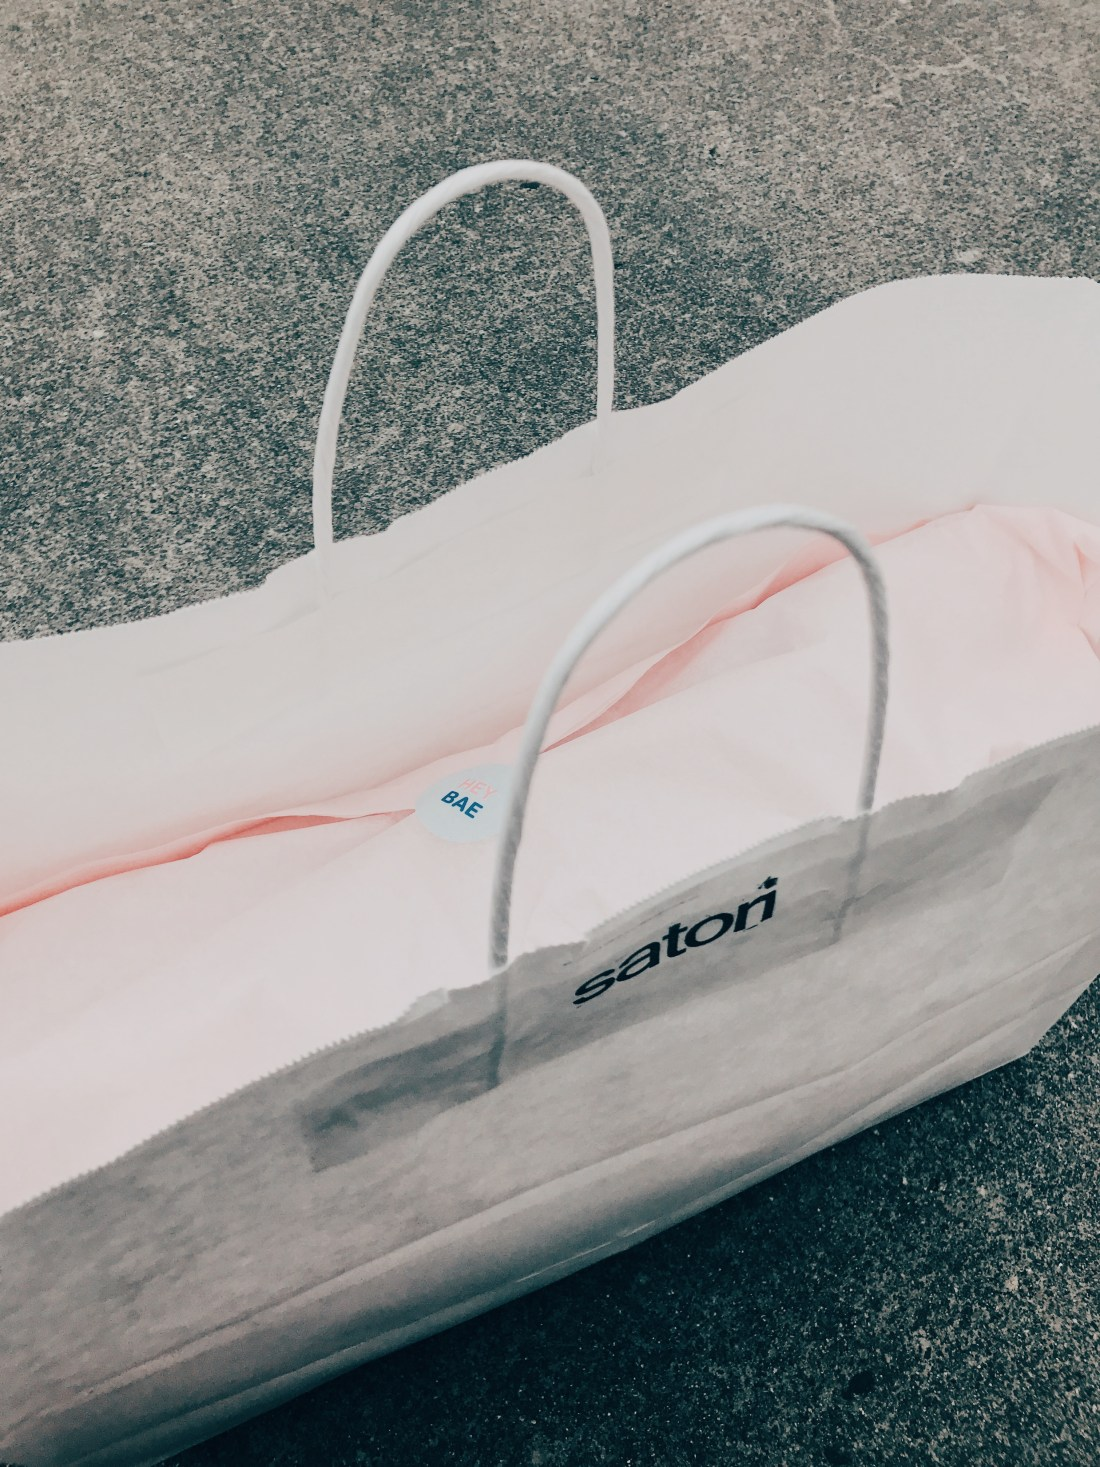 Satori boutique purchase packaging example